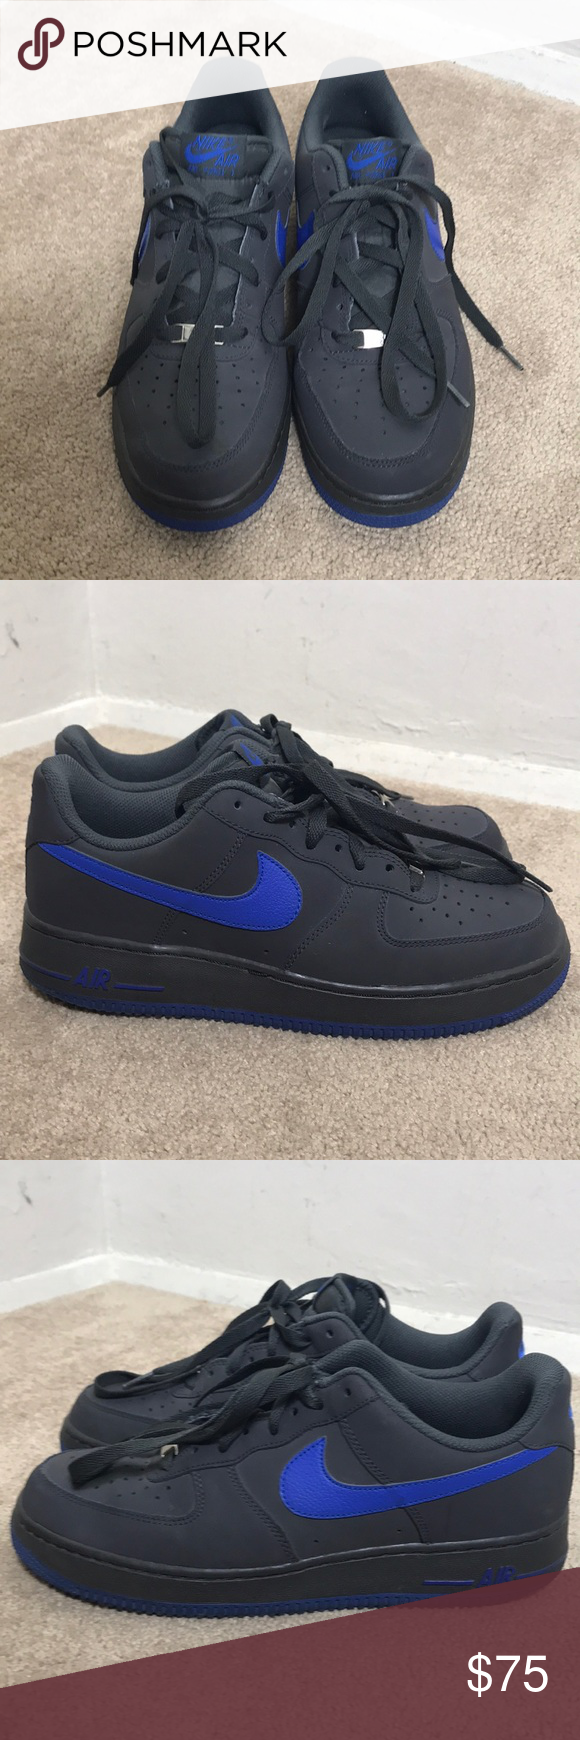 timeless design 7e8ff b183d Air Force 1 Low - Dark Grey - Royal Blue Air Force 1 Low - Dark Grey - Royal  Blue Pre-owned, Excellent Condition, Like New, Only Used Once Men size 9US  Nike ...